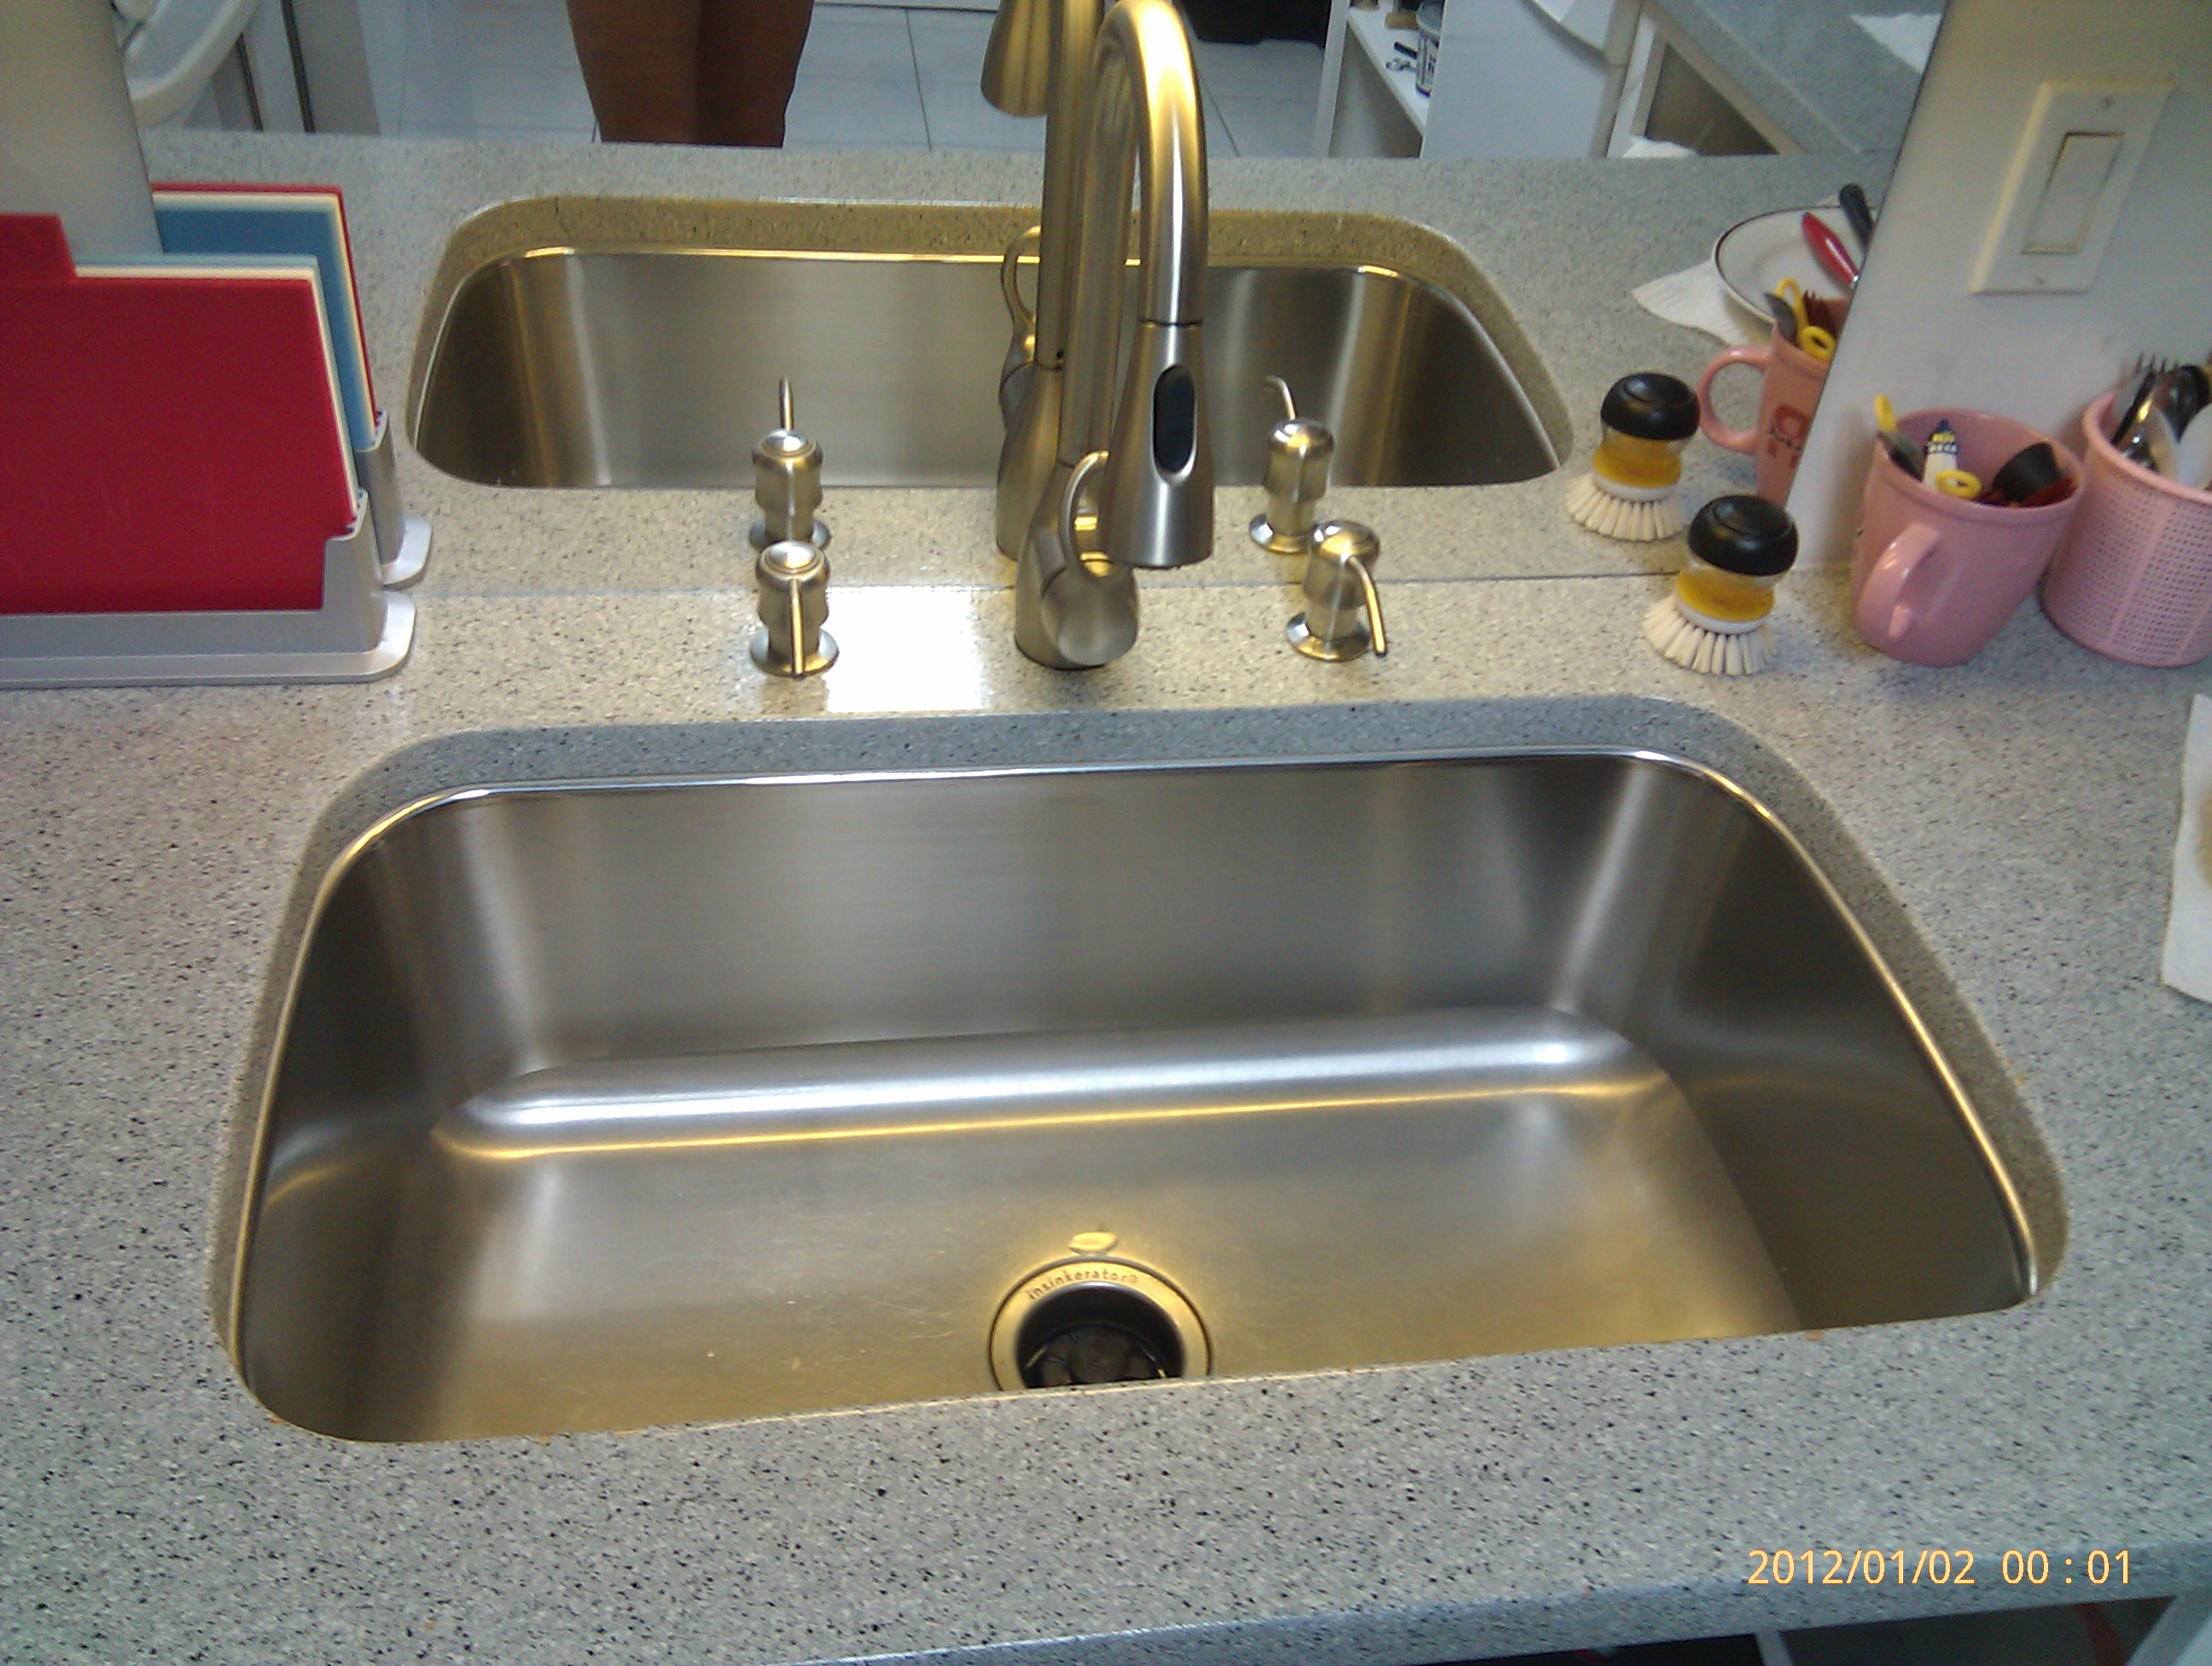 kitchen sink installation hawaii abc handyman hawaii need excellent kitchen sink installation in honolulu hawaii call abc handyman hawaii for same day quality service with aloha 2 replacing a kitchen sink Image Image